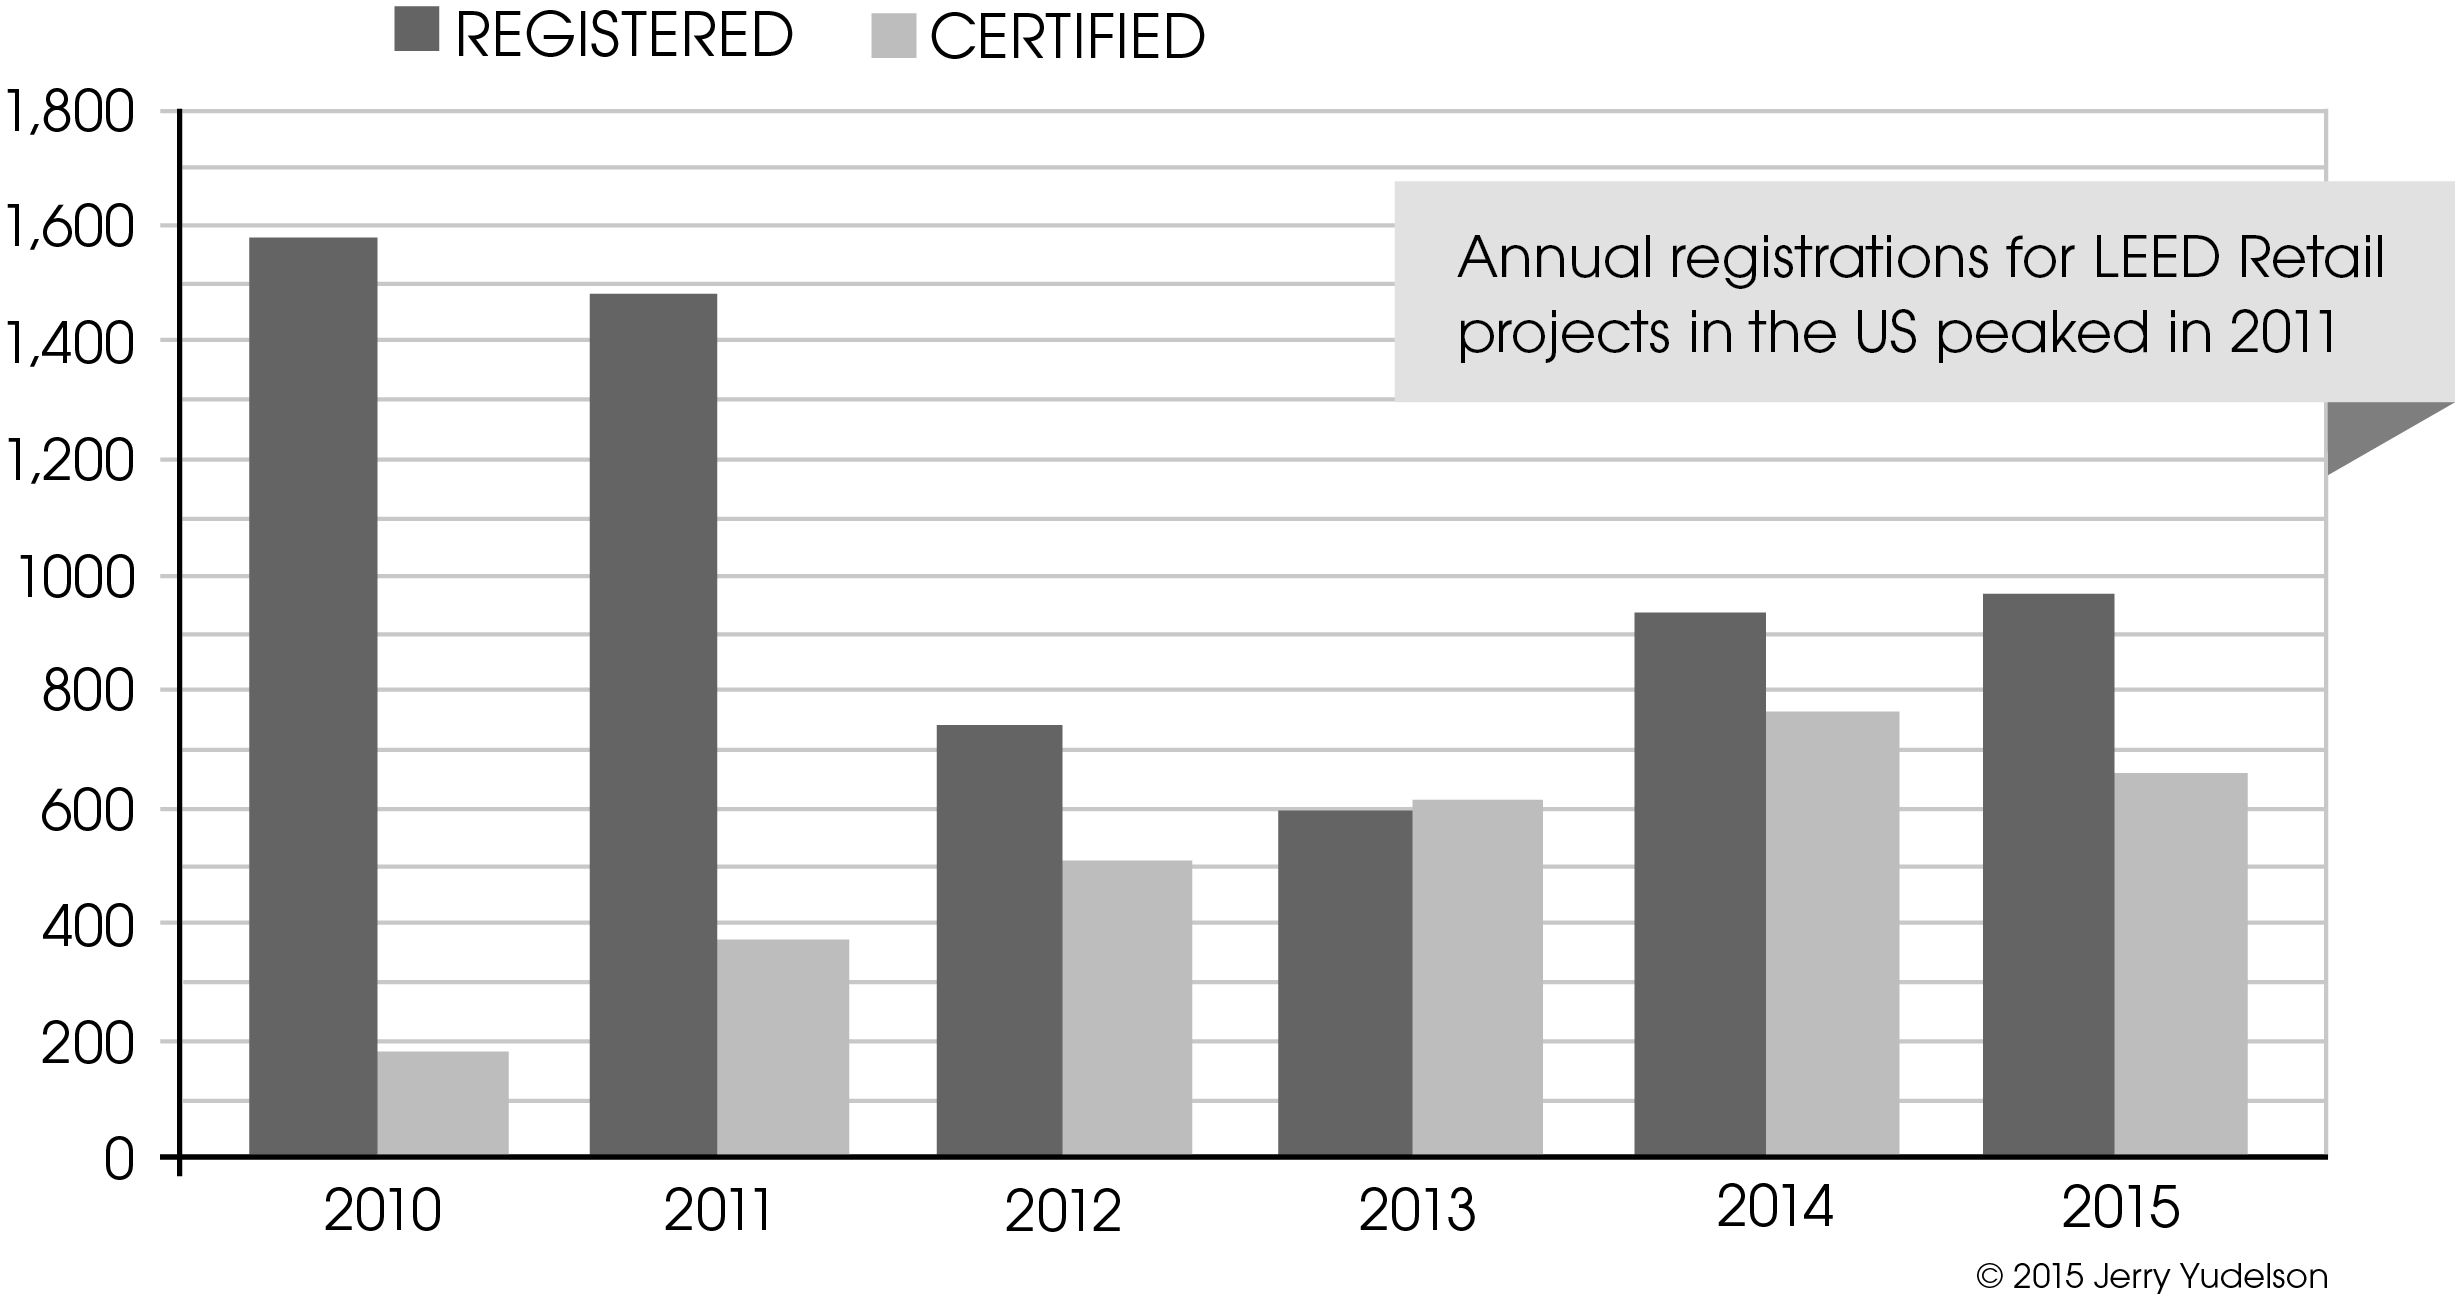 Annual registrations for LEED retail projects peaked in 2010-2011 and is down one-third since then.